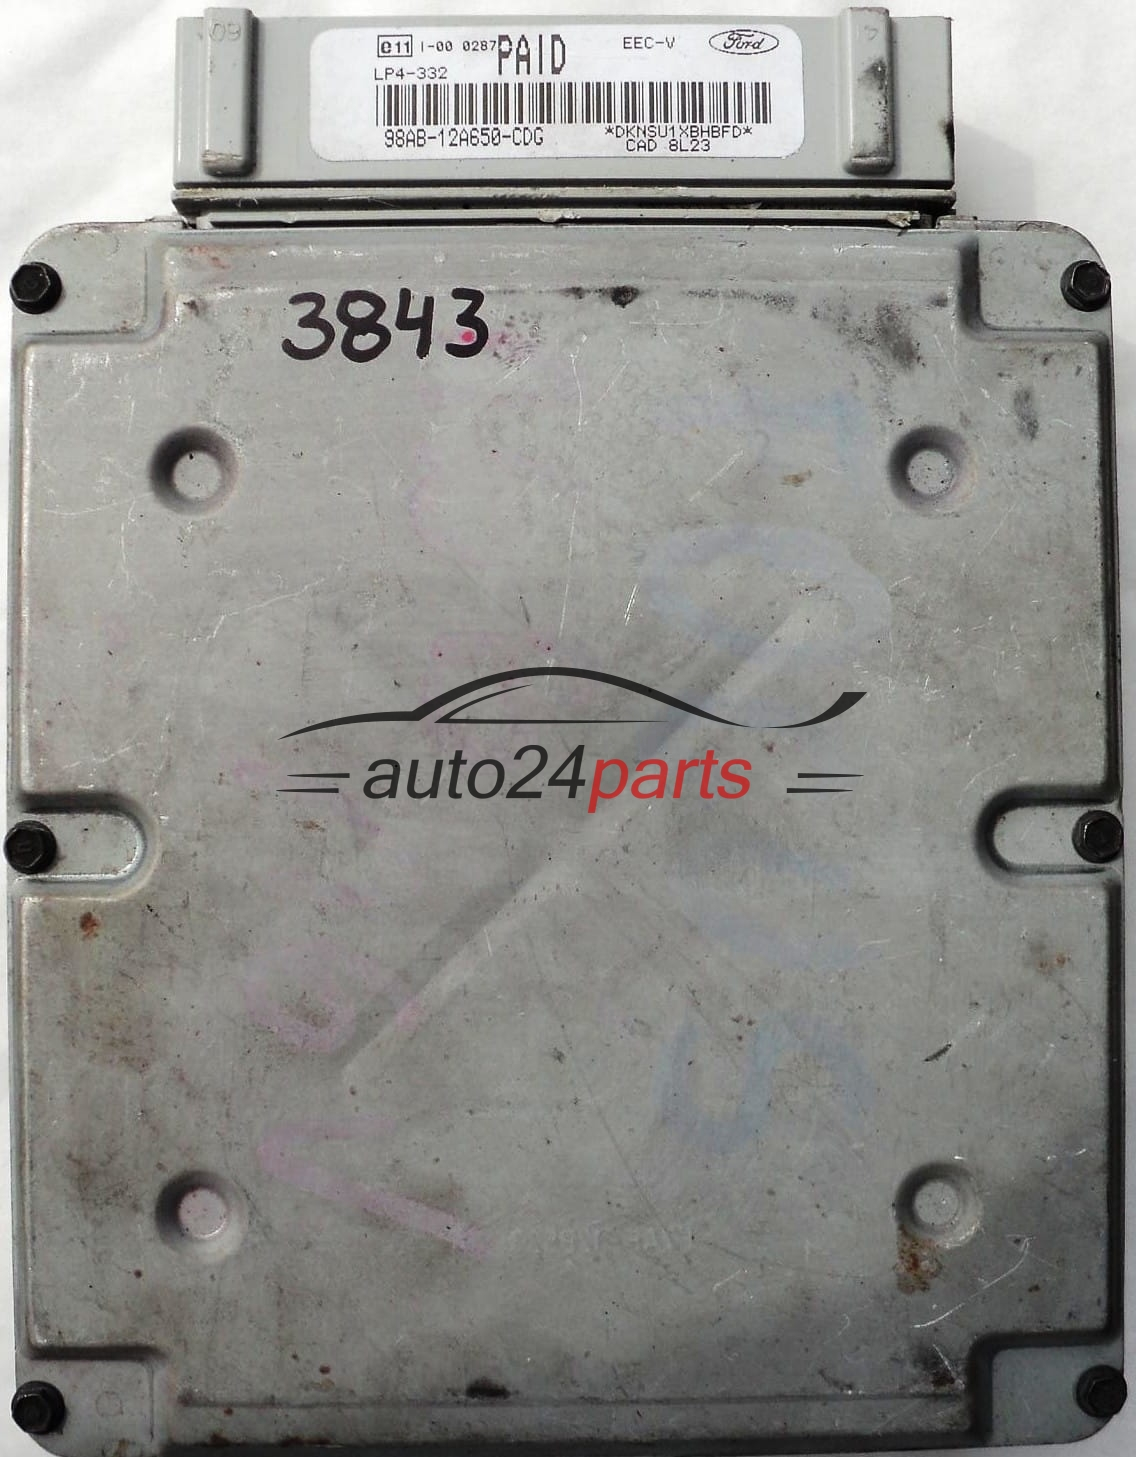 ECU ENGINE CONTROLLER FORD FOCUS 1 6 VISTEON 98AB-12A650-CDG 98AB12A650CDG  PAID LP4-332 EEC-V